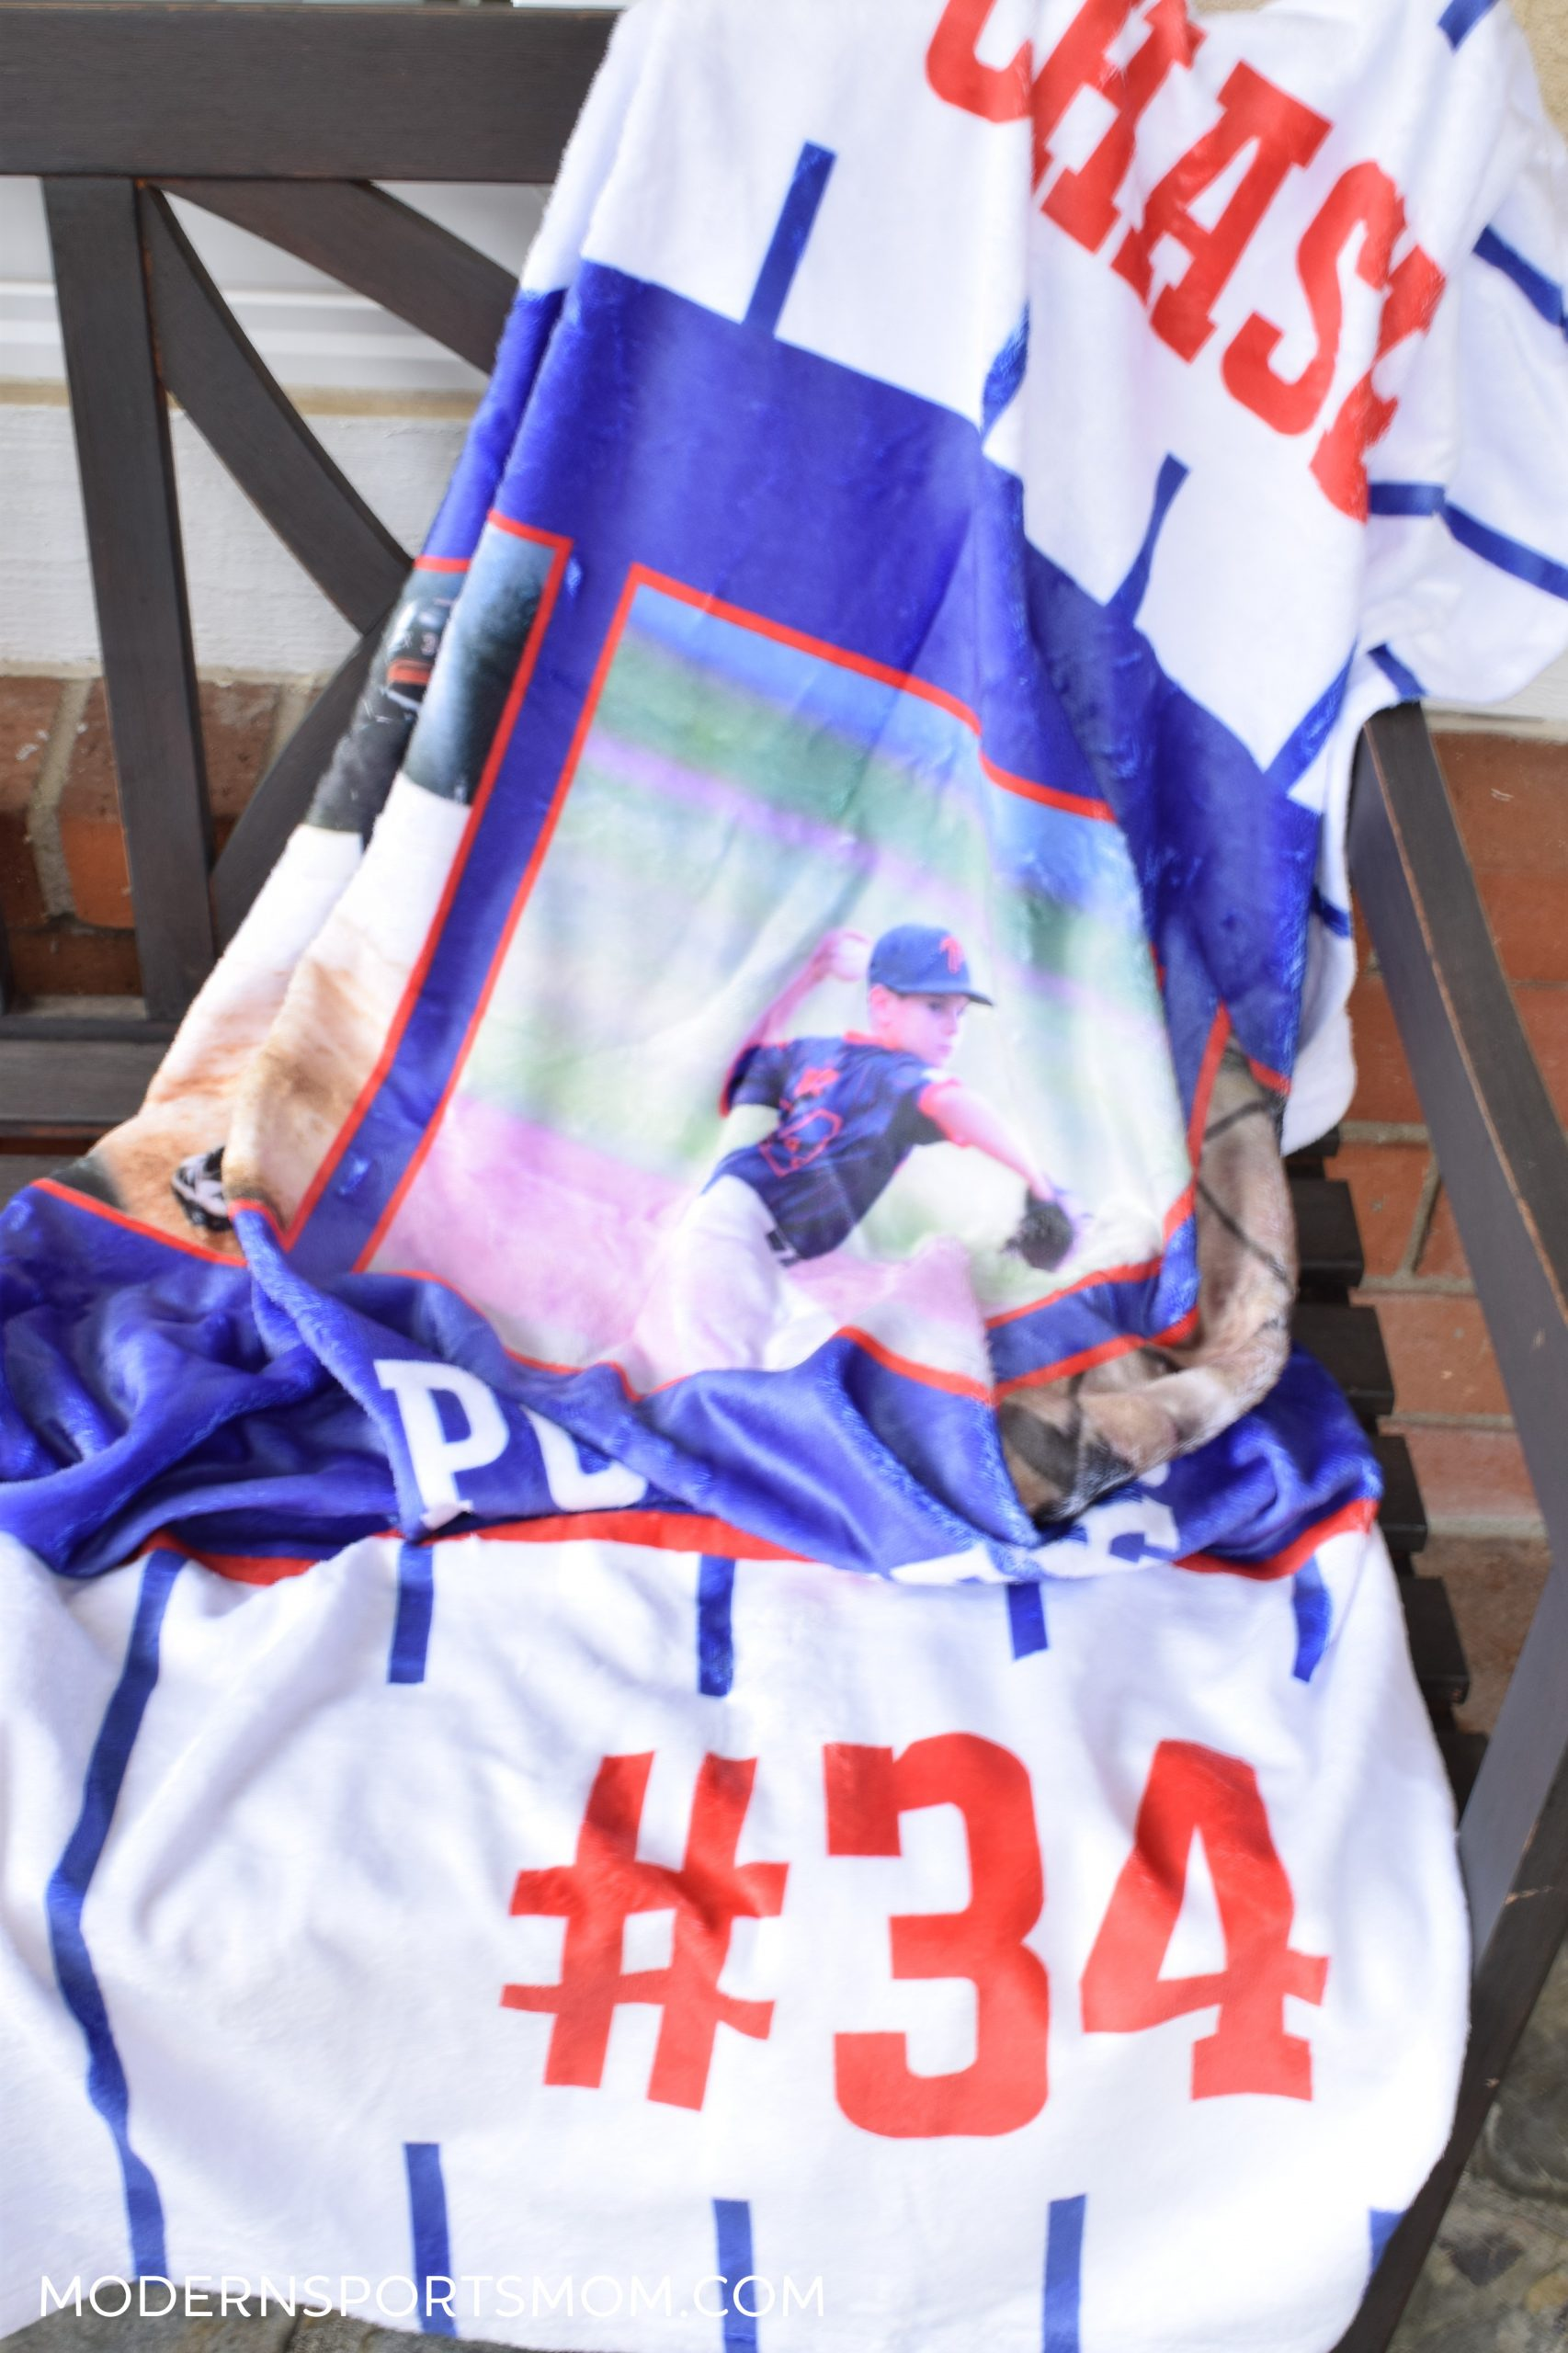 Show off your athletes by creating a fun personalized blanket with FOTO Vision!